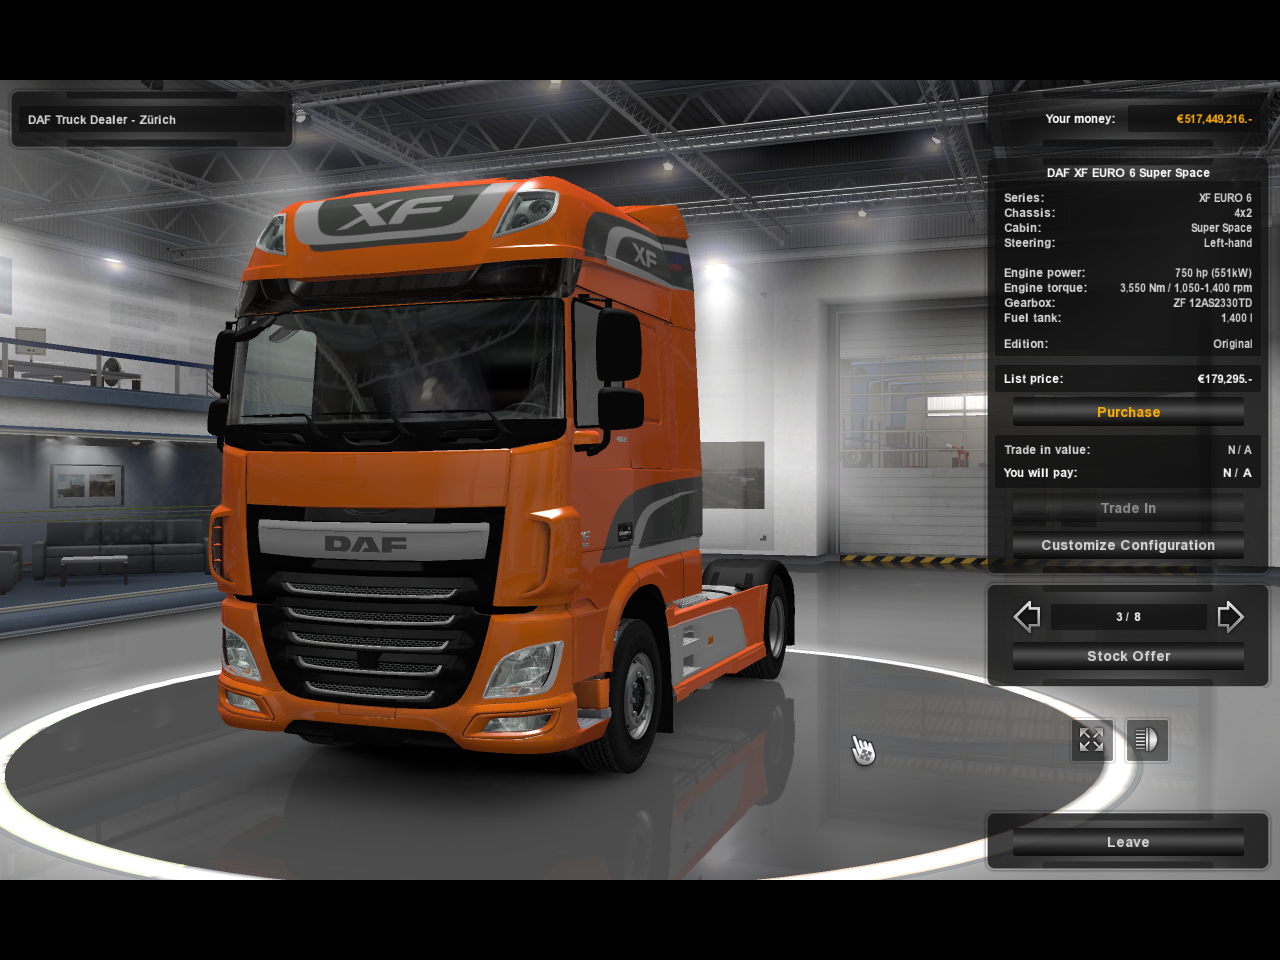 750 HP Engine Mod for all Trucks for Multiplayer ETS2 - Euro